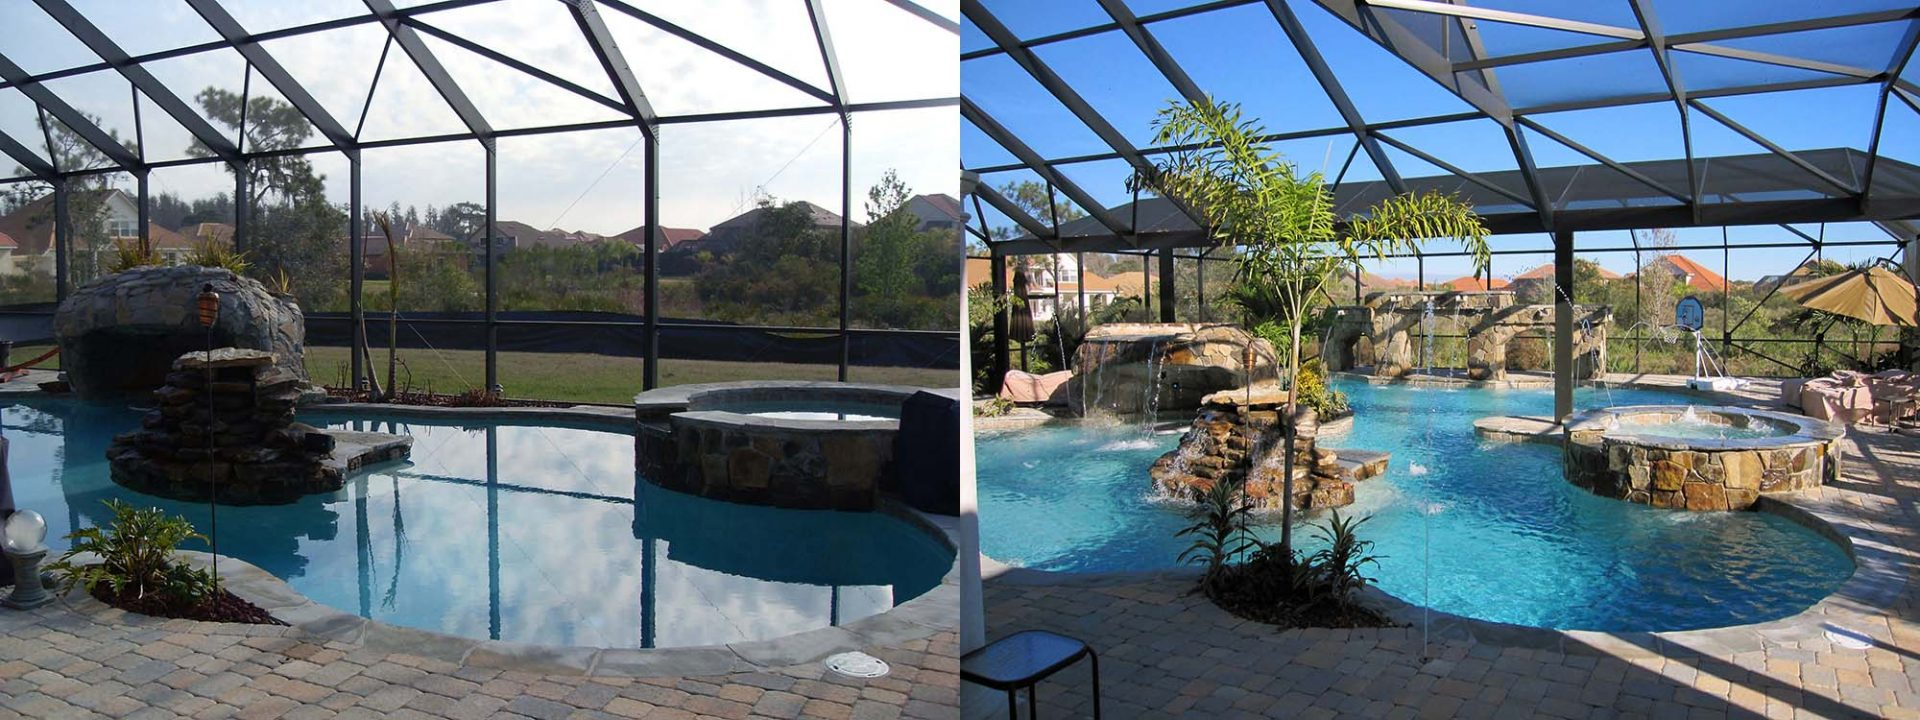 Custom Pool Remodel Before and After by Waterscapes Inc.